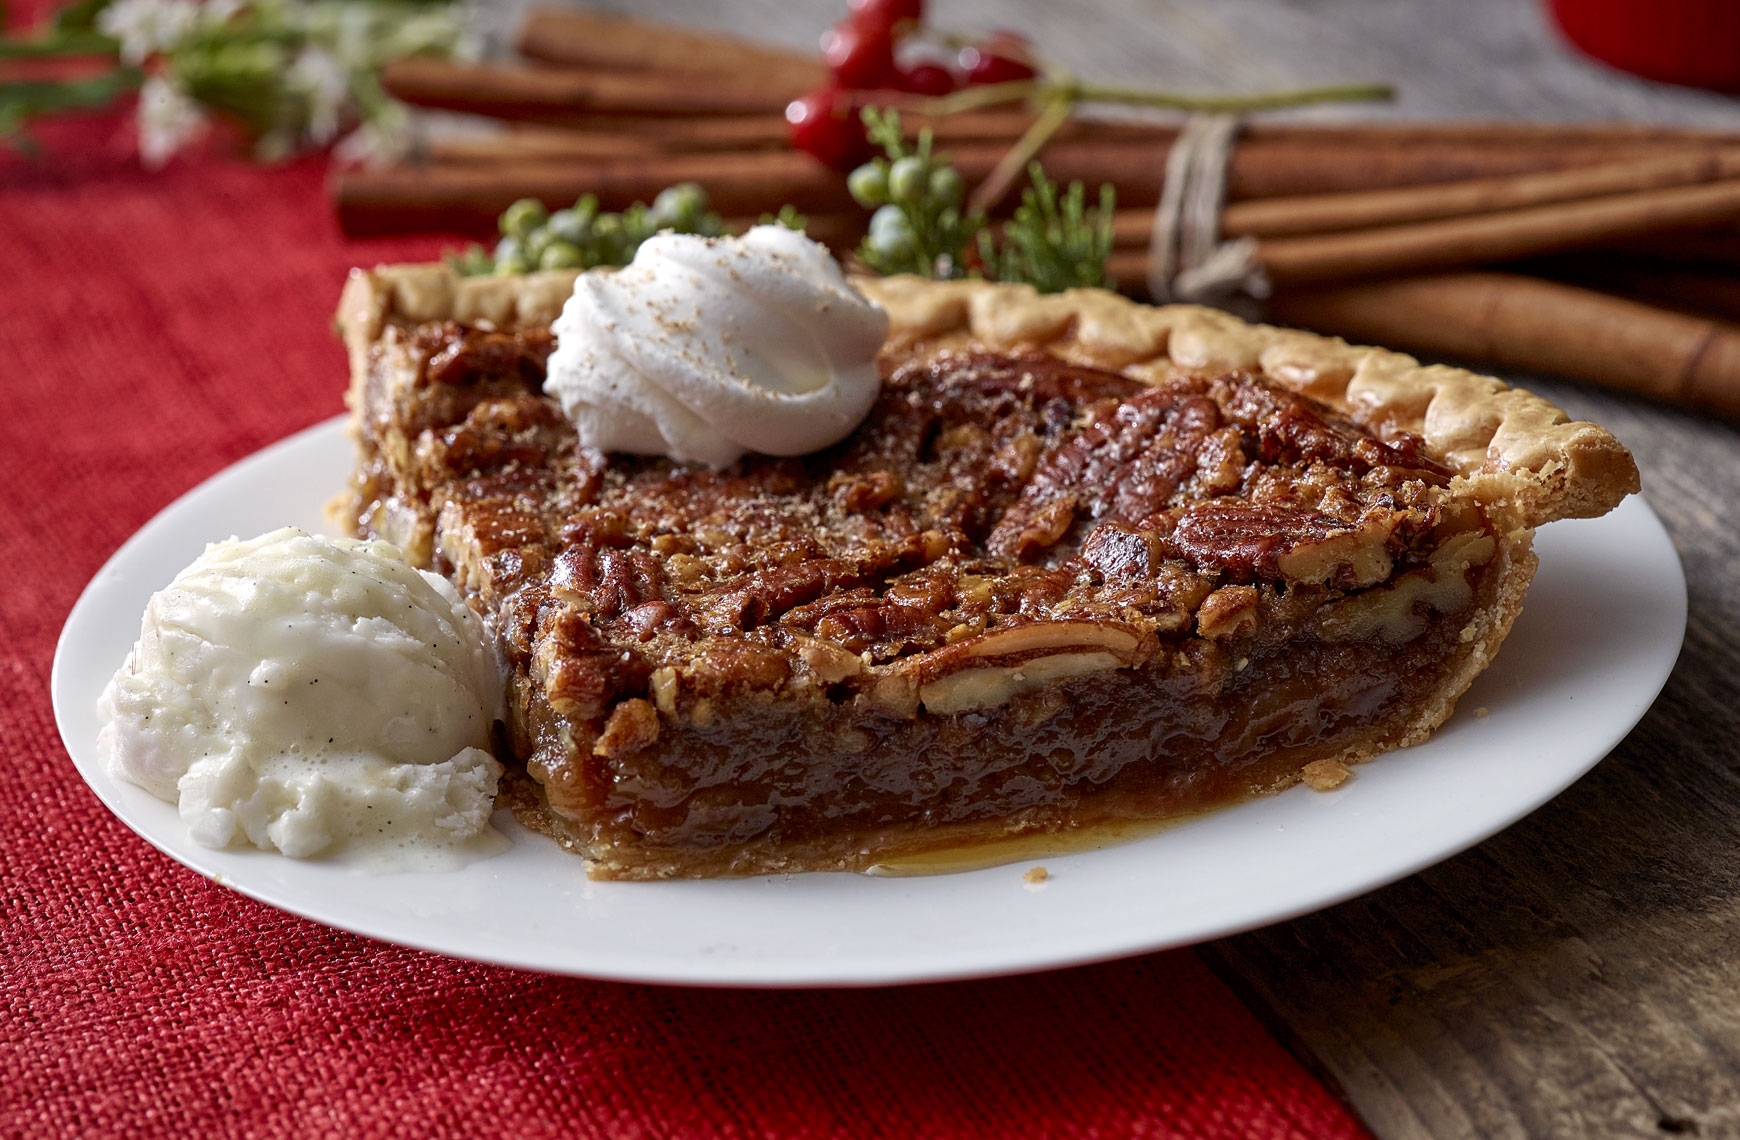 Pecan pie with vanilla ice cream and whipped cream, cinnamon sticks in background.  Food photography, InsideOut Studios.